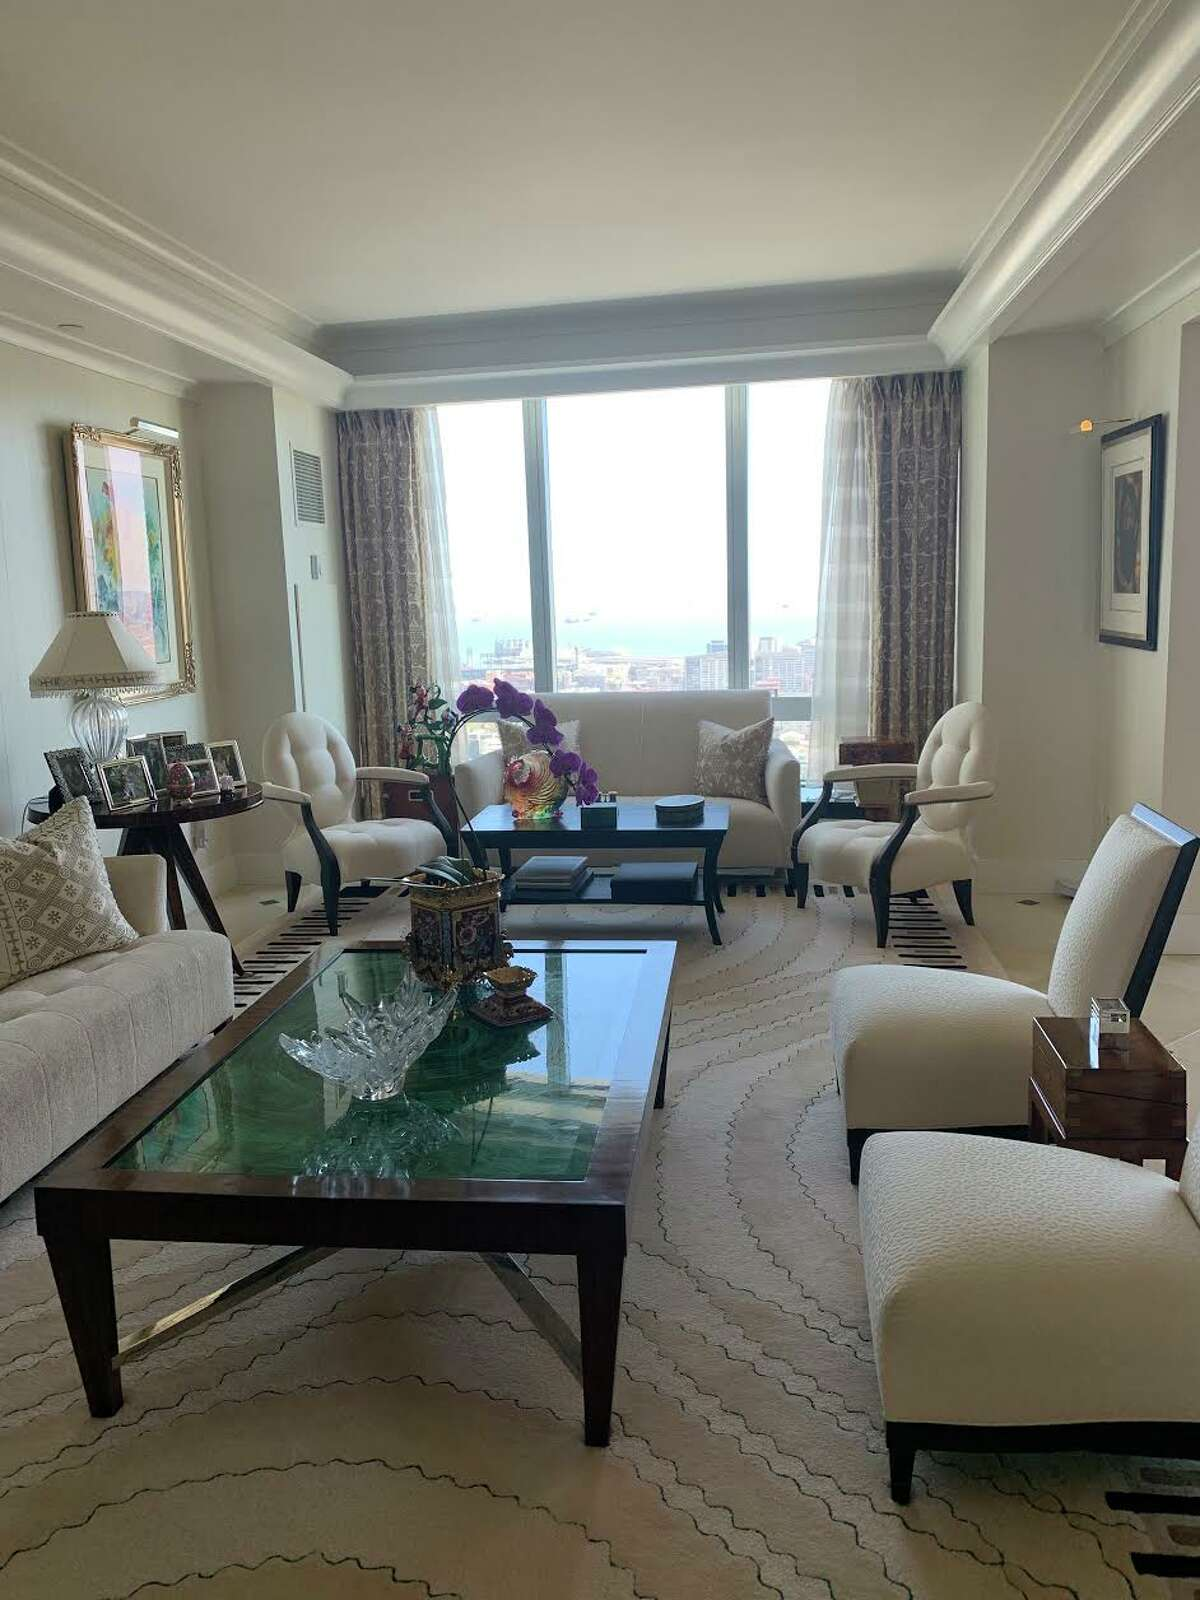 """The buyer also liked that the luxurious residence was in """"mint condition,"""" said Lynn, with designer finishes like custom window treatments, silk wallpaper and gilded ceilings."""